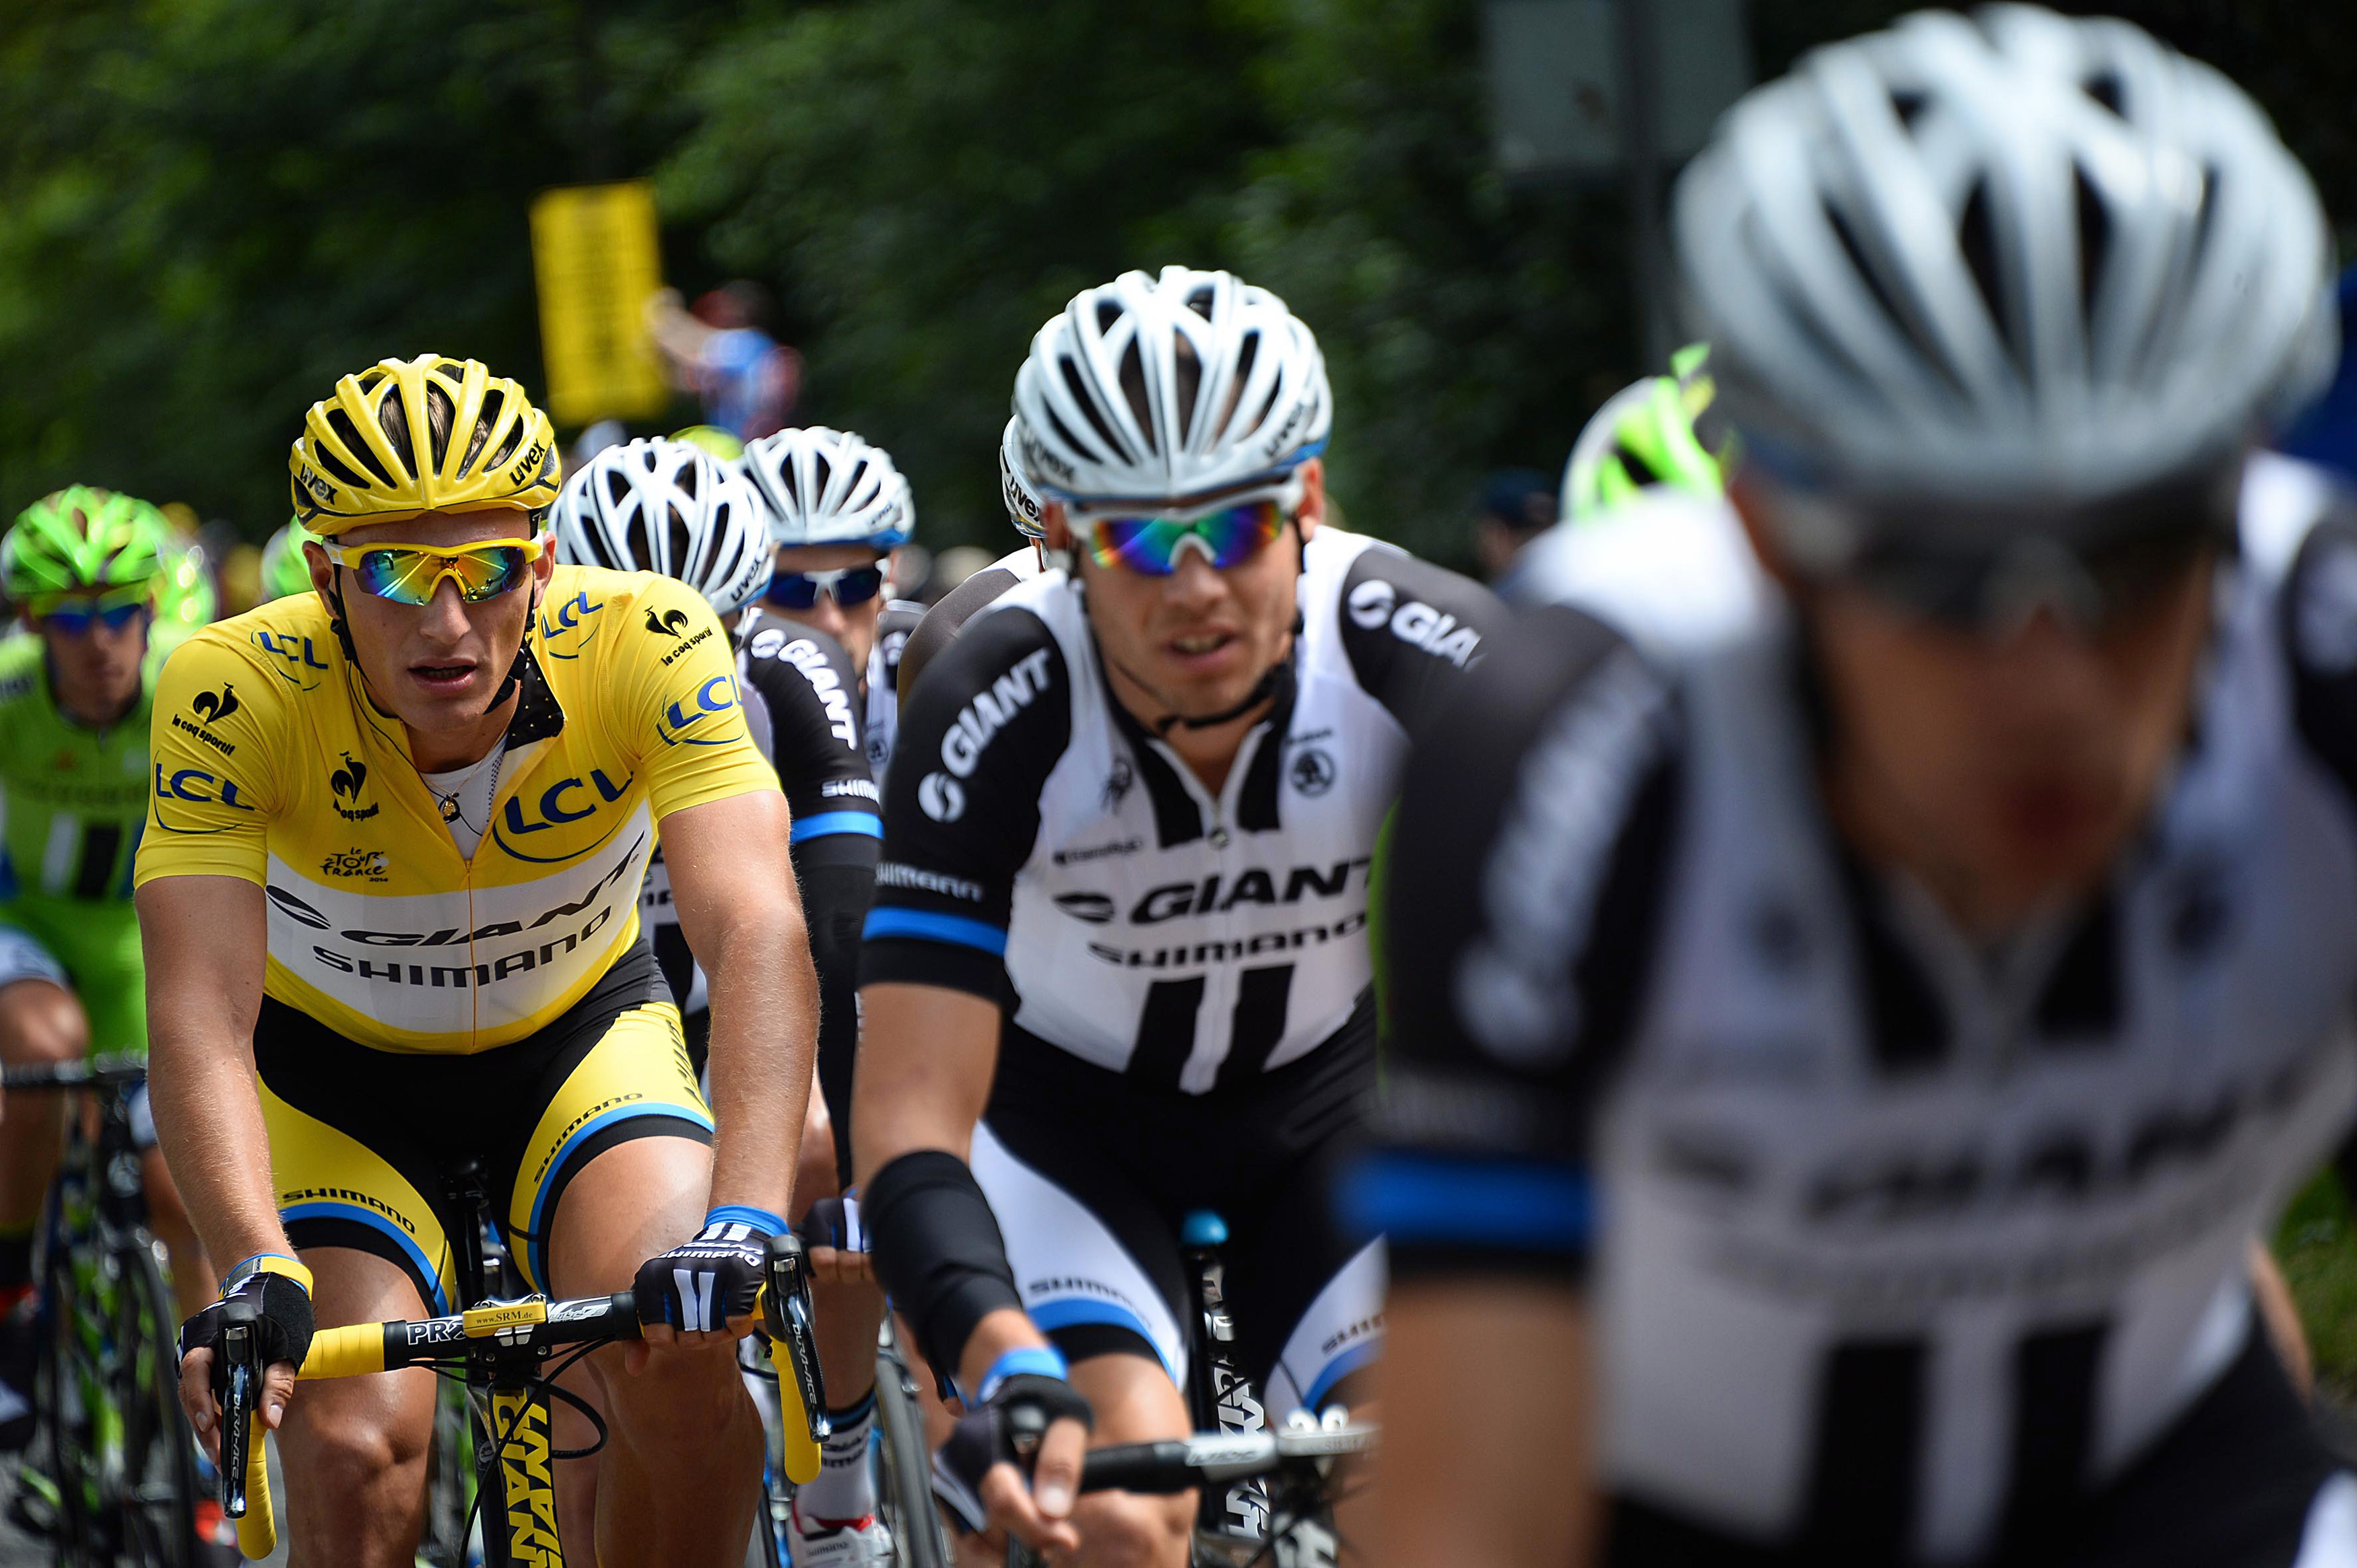 Marcel Kittel in the yellow jersey at the 2014 Tour de France